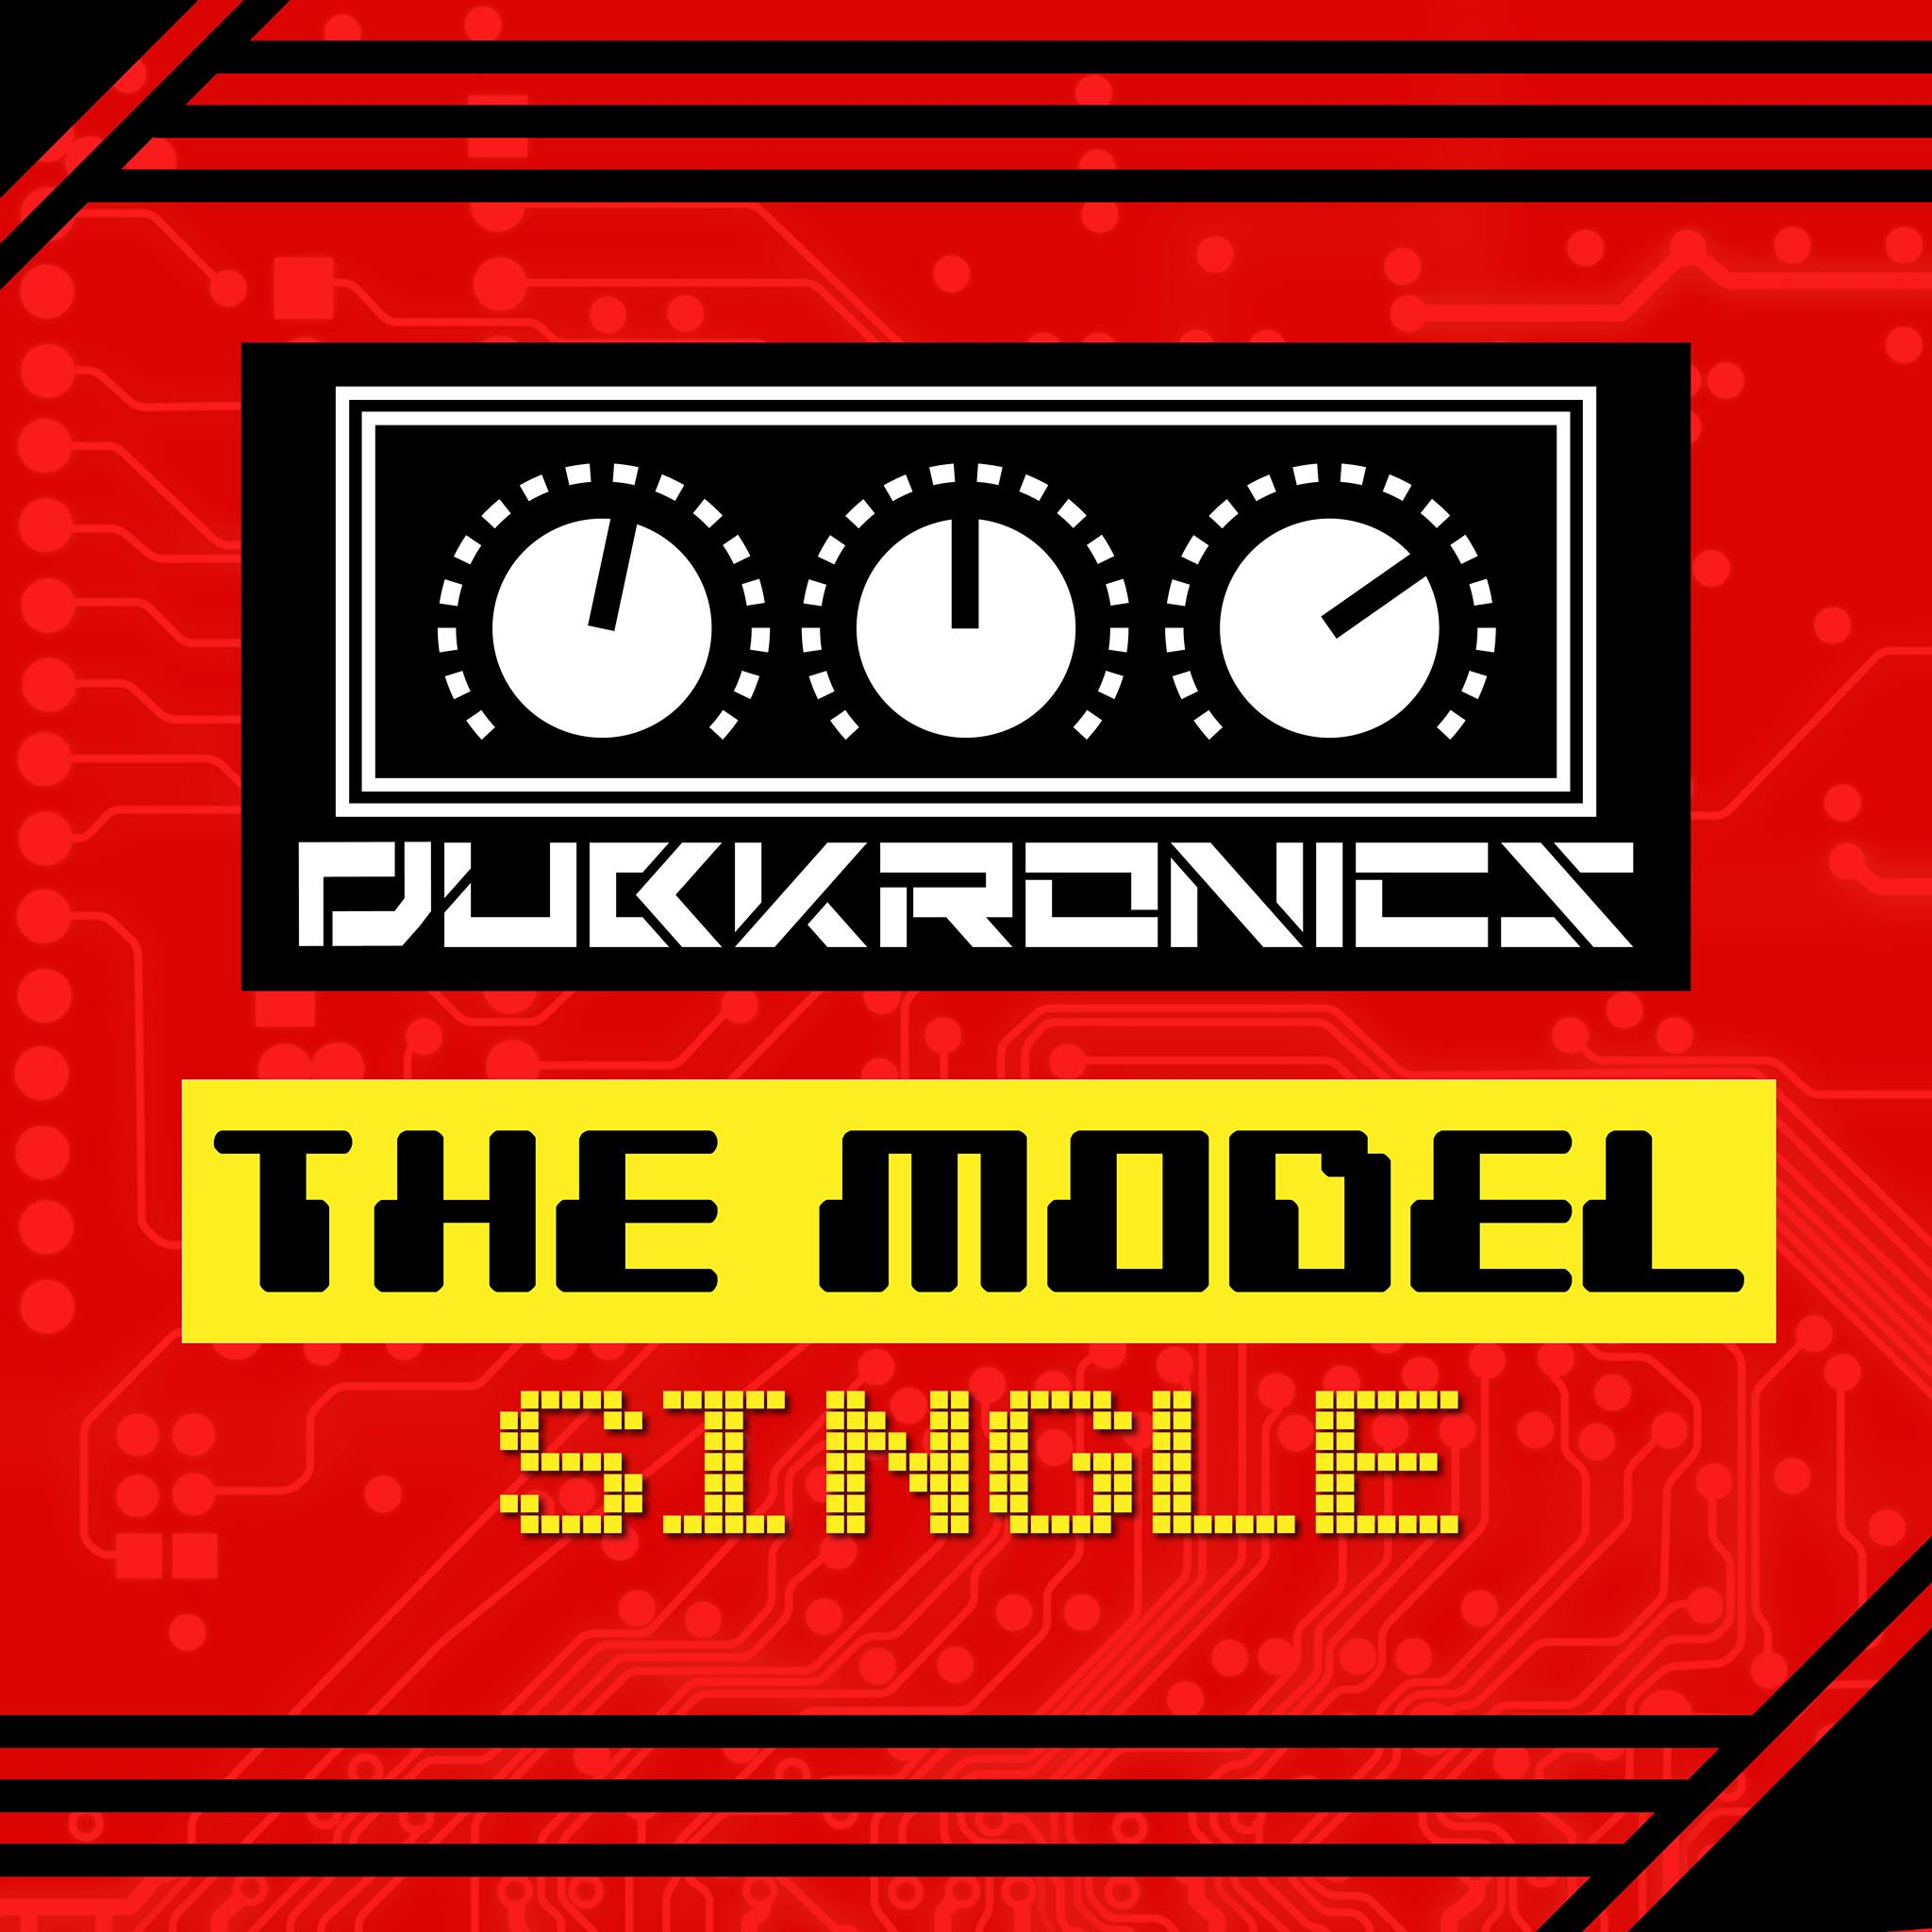 Dubkronics - The Model Single